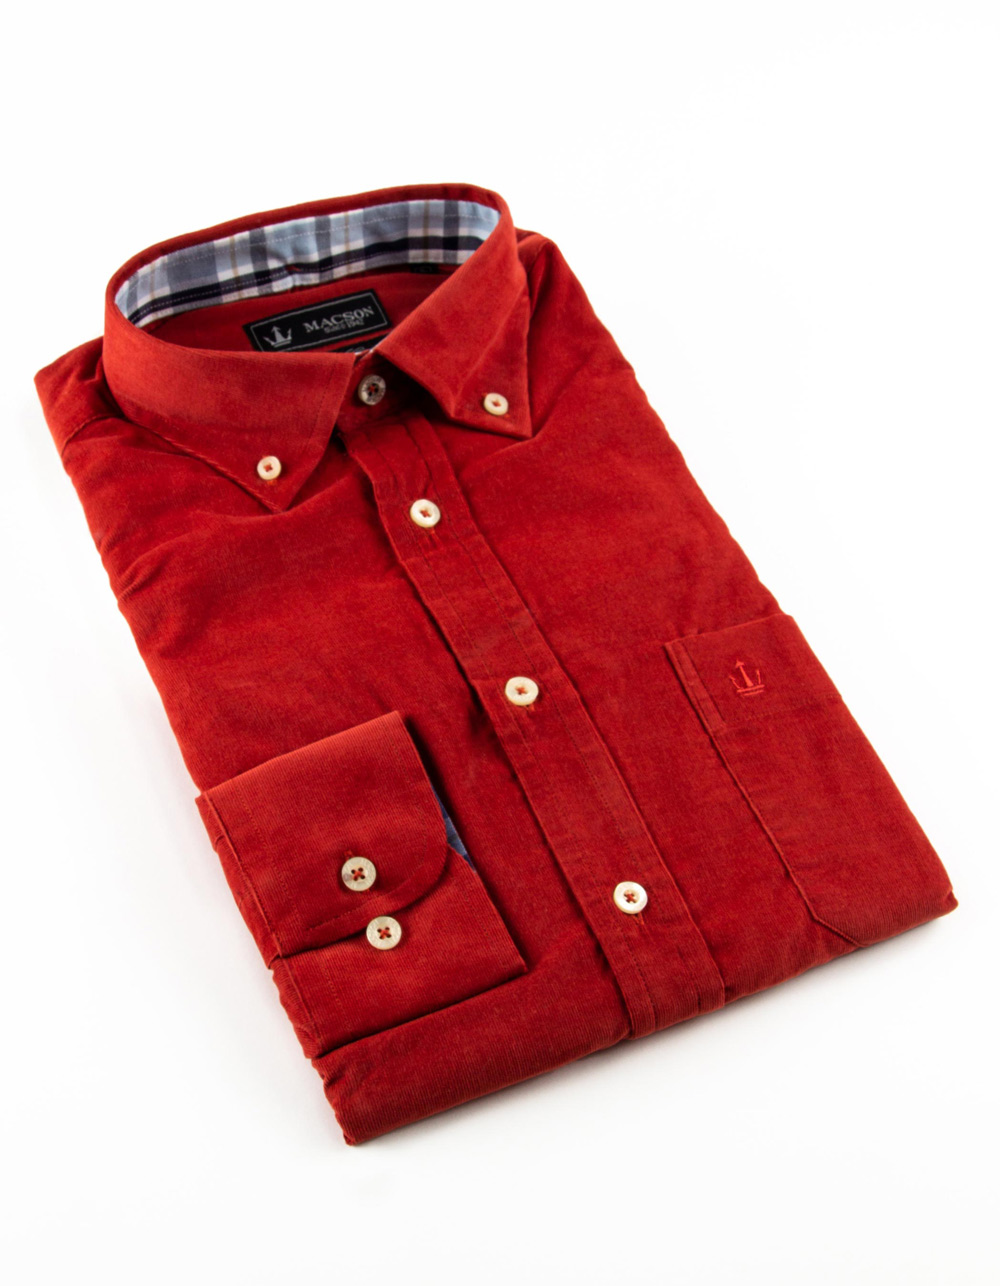 finest corduroy Dress Shirt